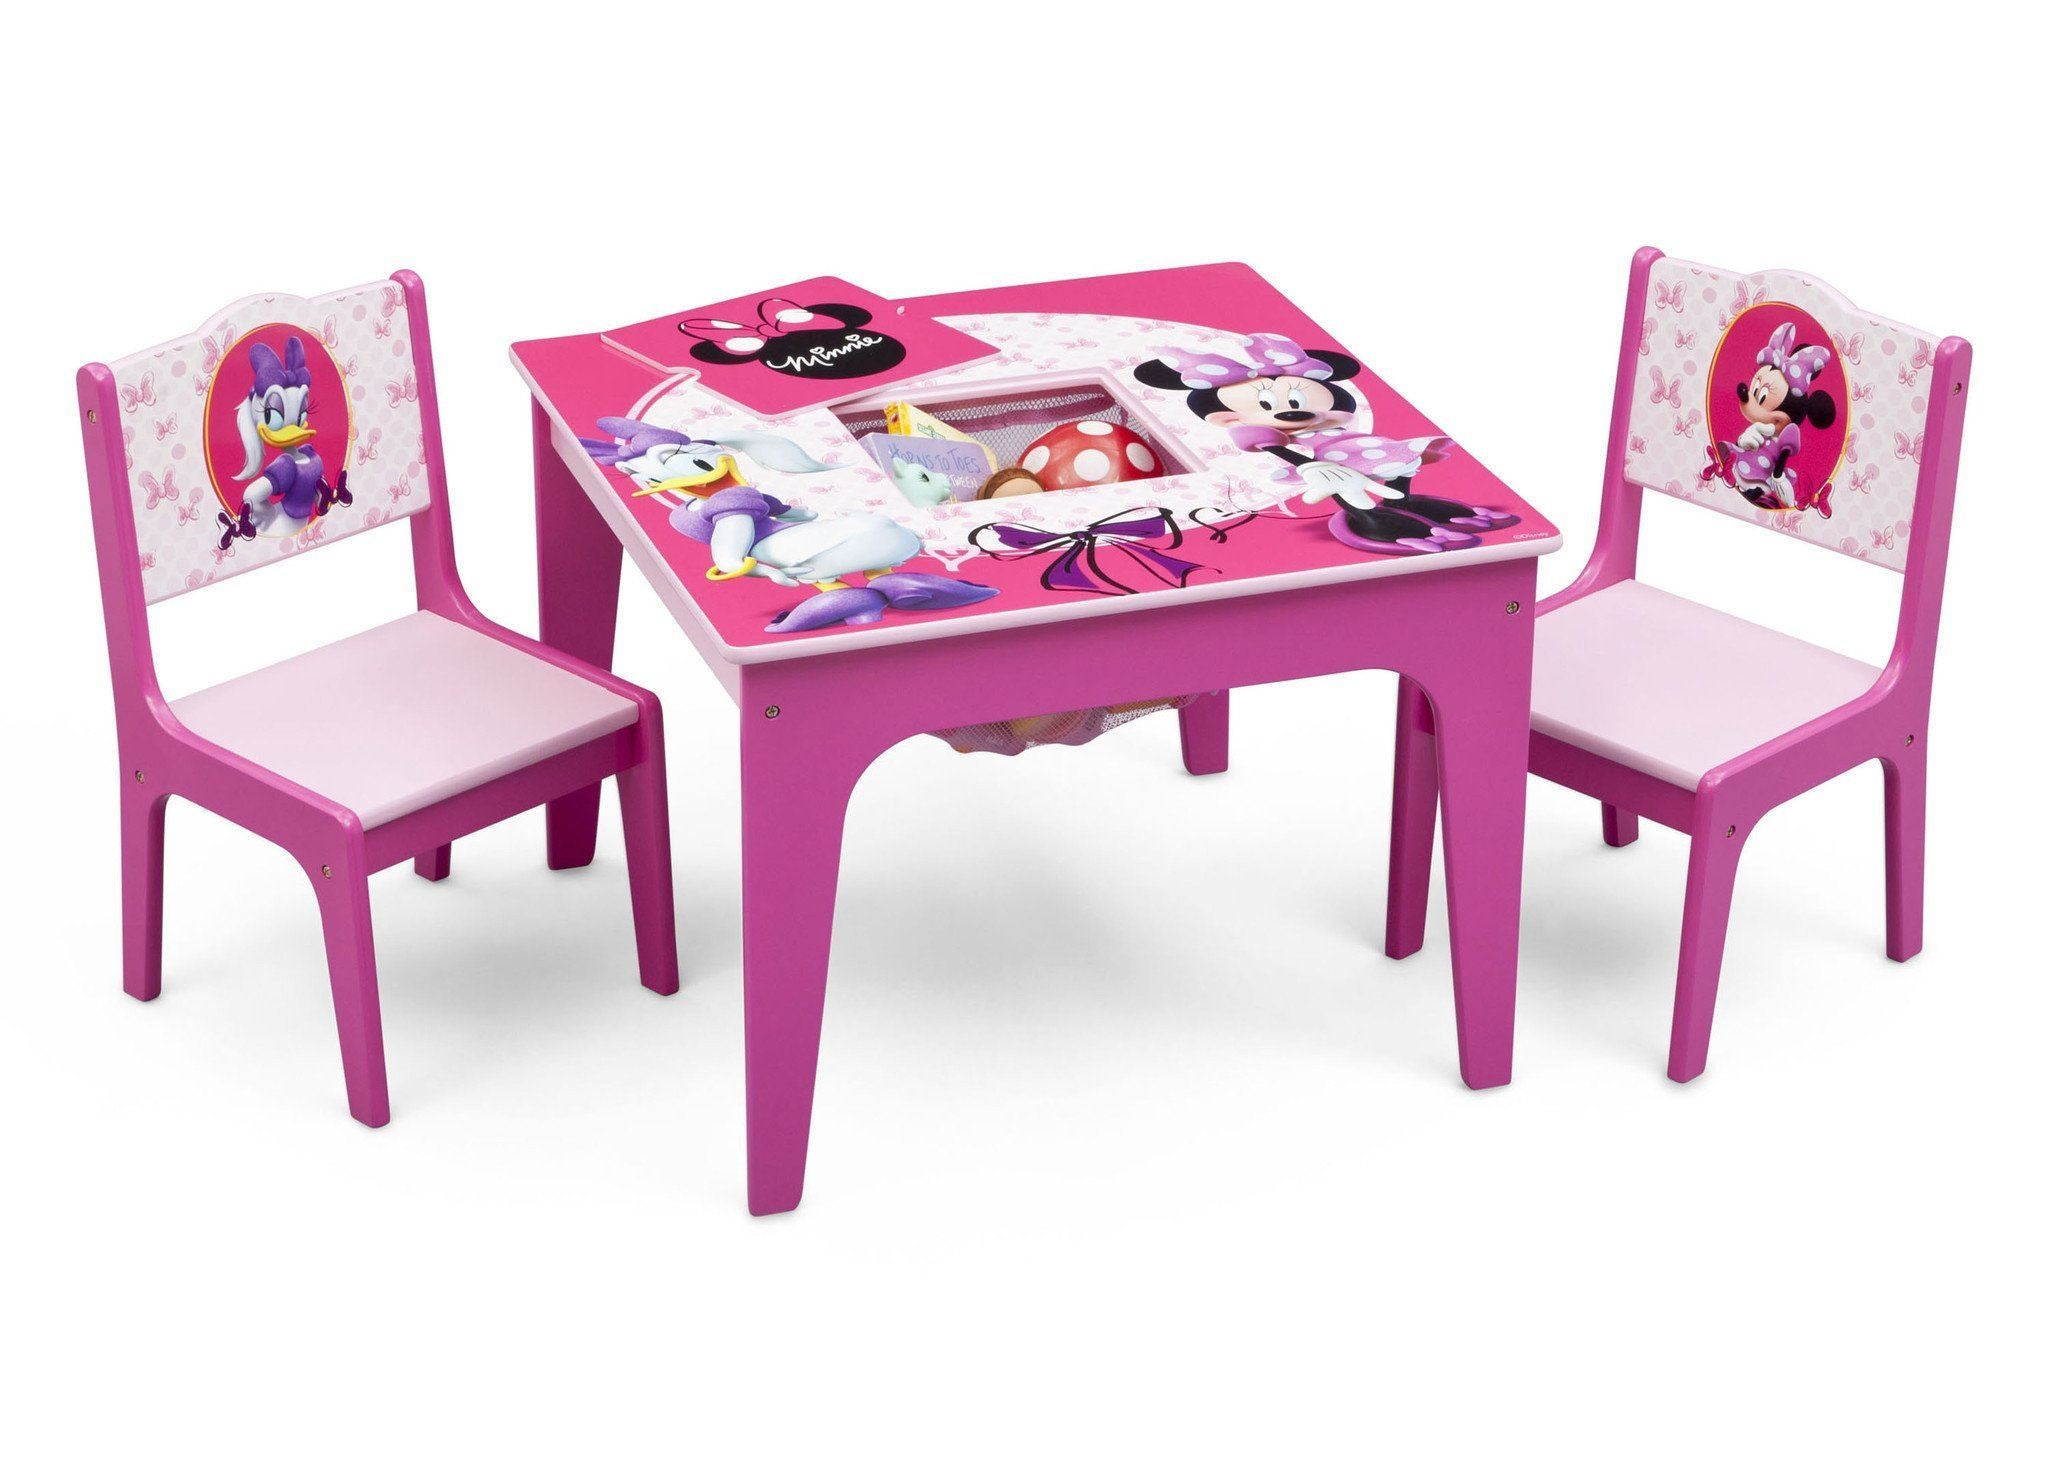 Delta Children Minnie Mouse Deluxe Table and Chair Set with Storage Right View with Props ...  sc 1 st  Delta Children & Minnie Mouse Deluxe Table \u0026 Chair Set with Storage | Delta Children